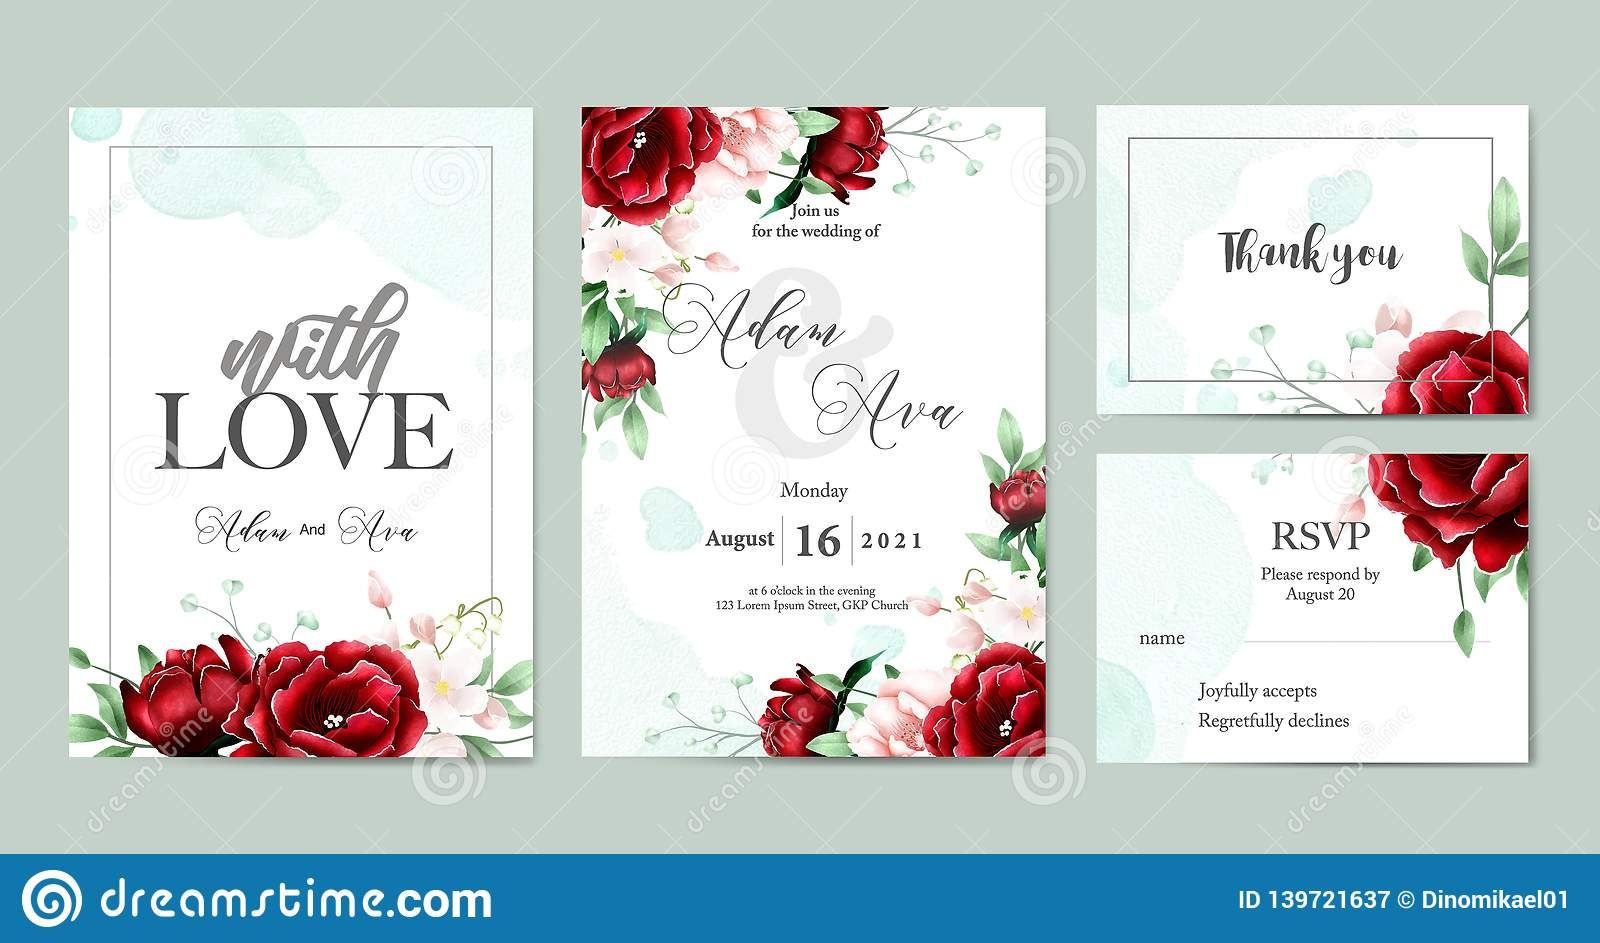 Floral Watercolor Wedding Invitation Template Set Stock Vector -  Illustration of backgrounds, party: 139721637